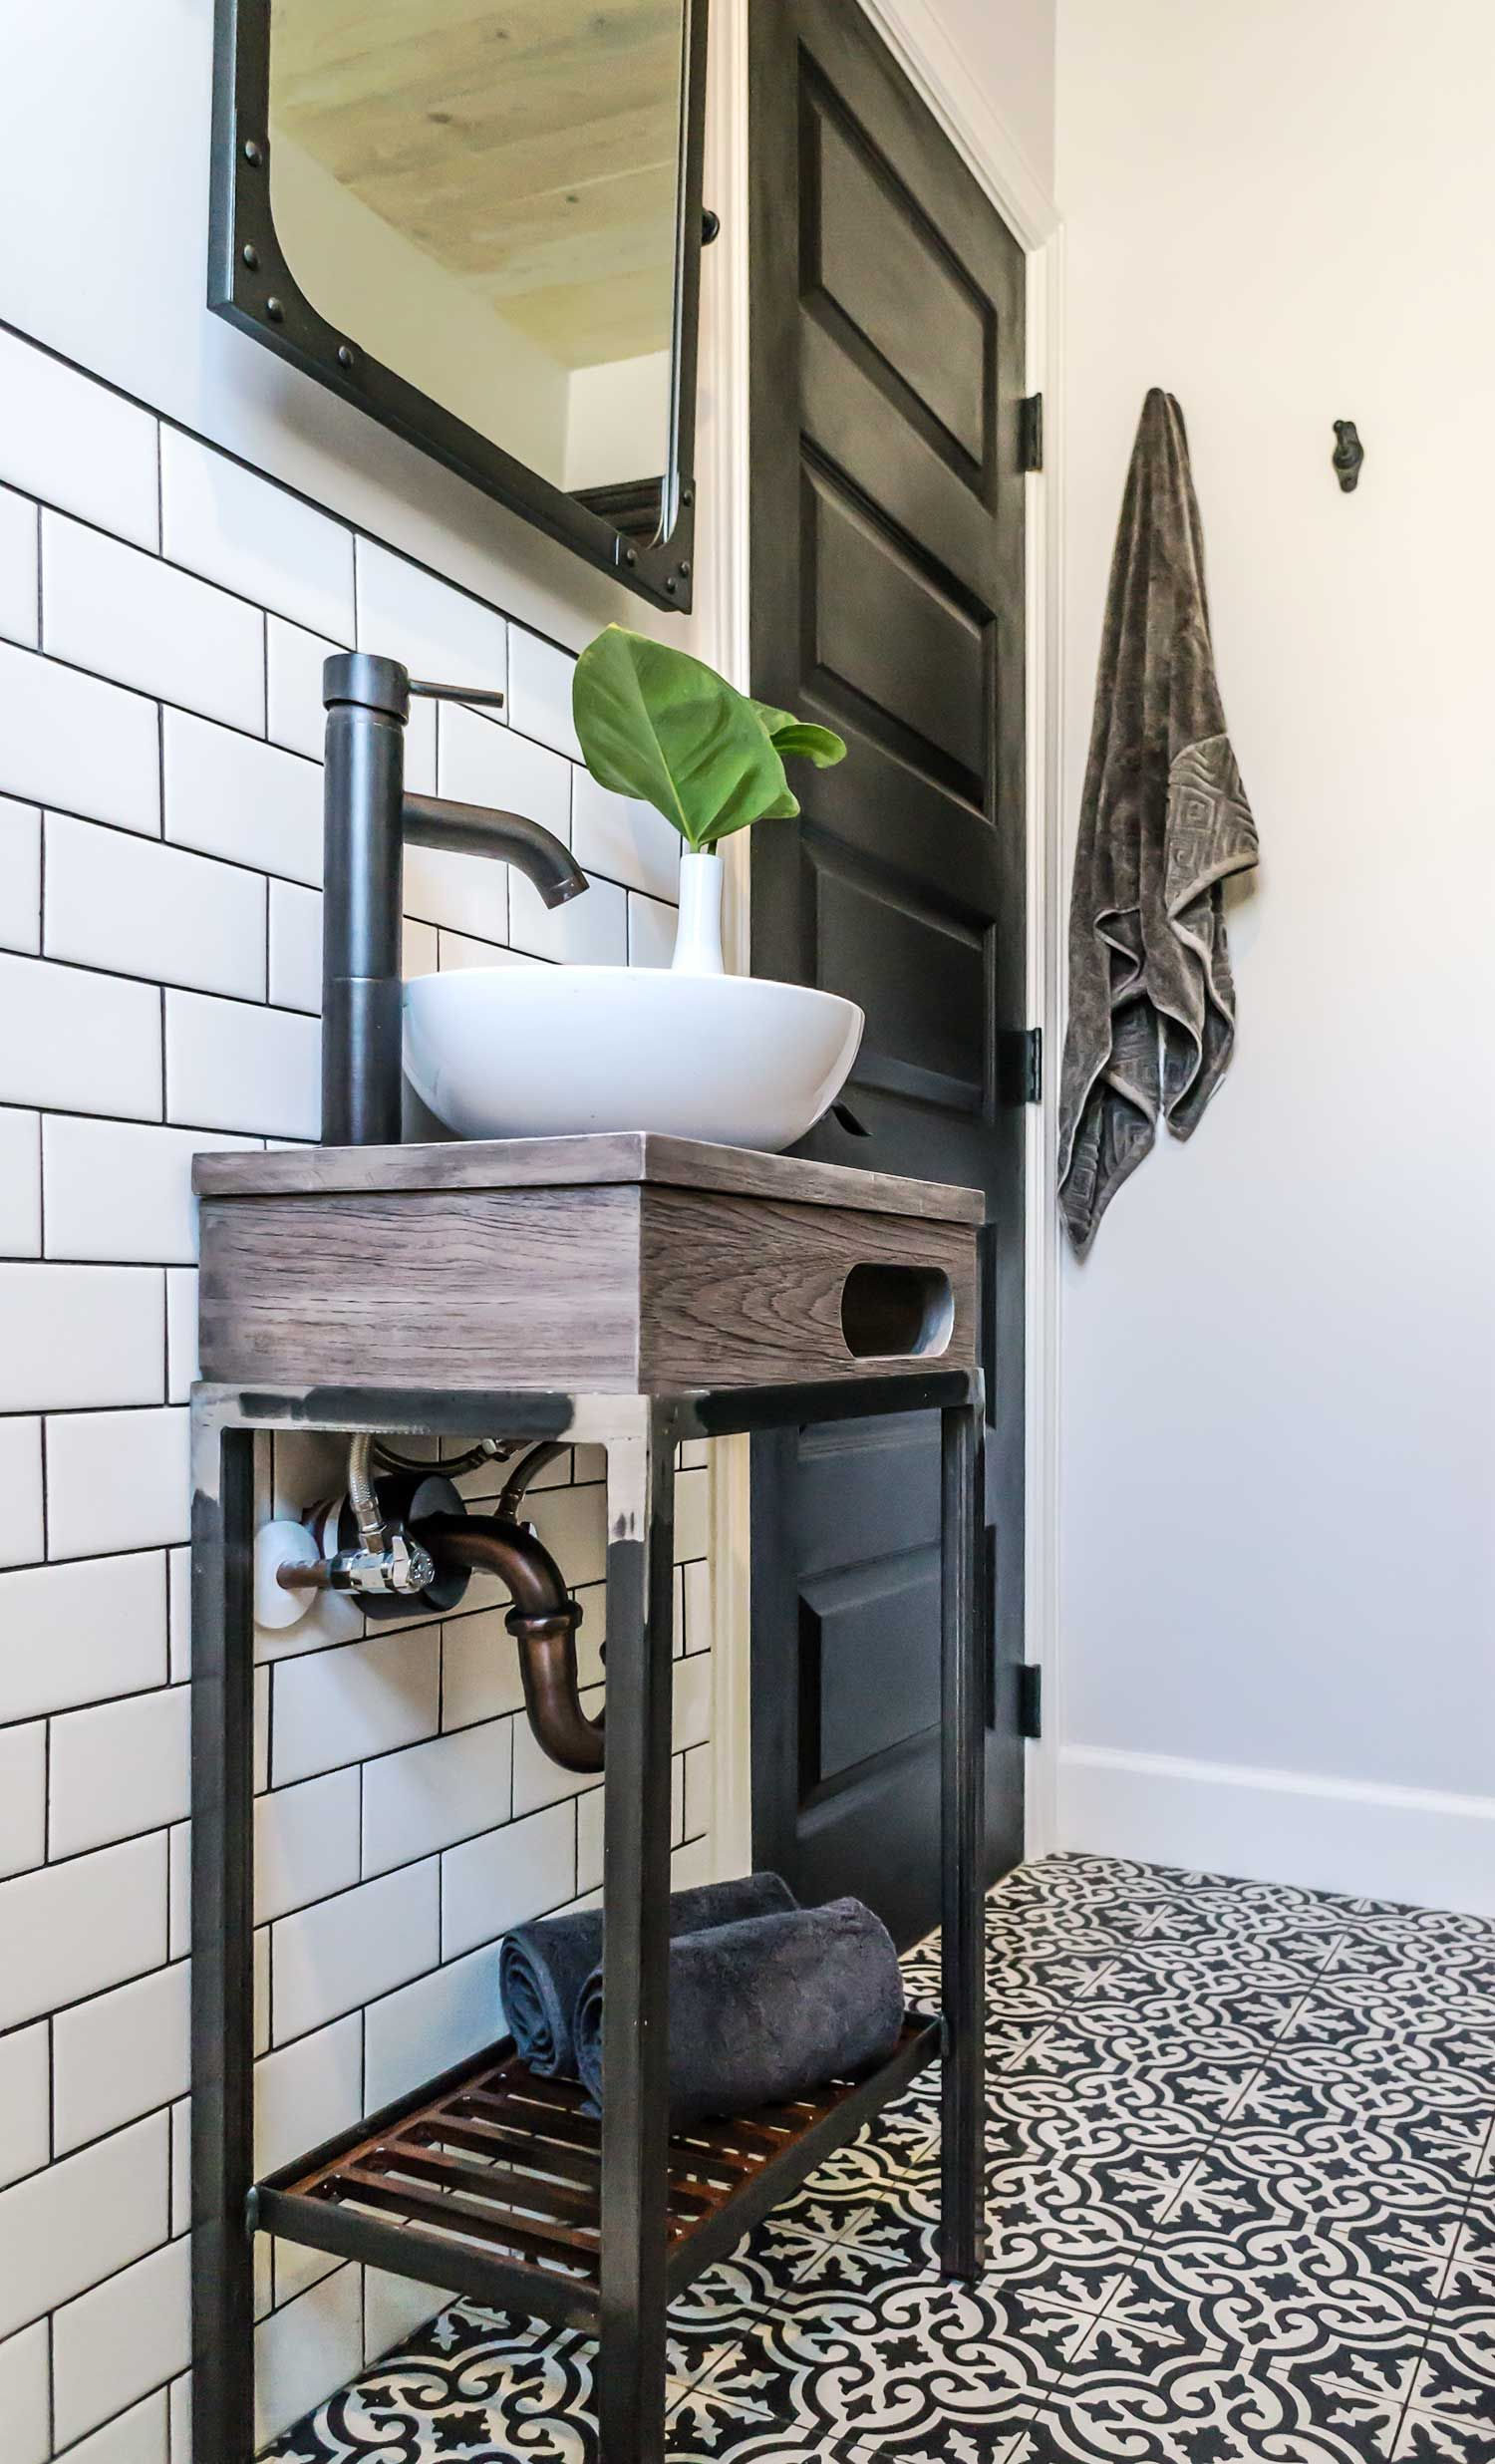 How Much Budget Bathroom Remodel You Need? | Home: CV ...